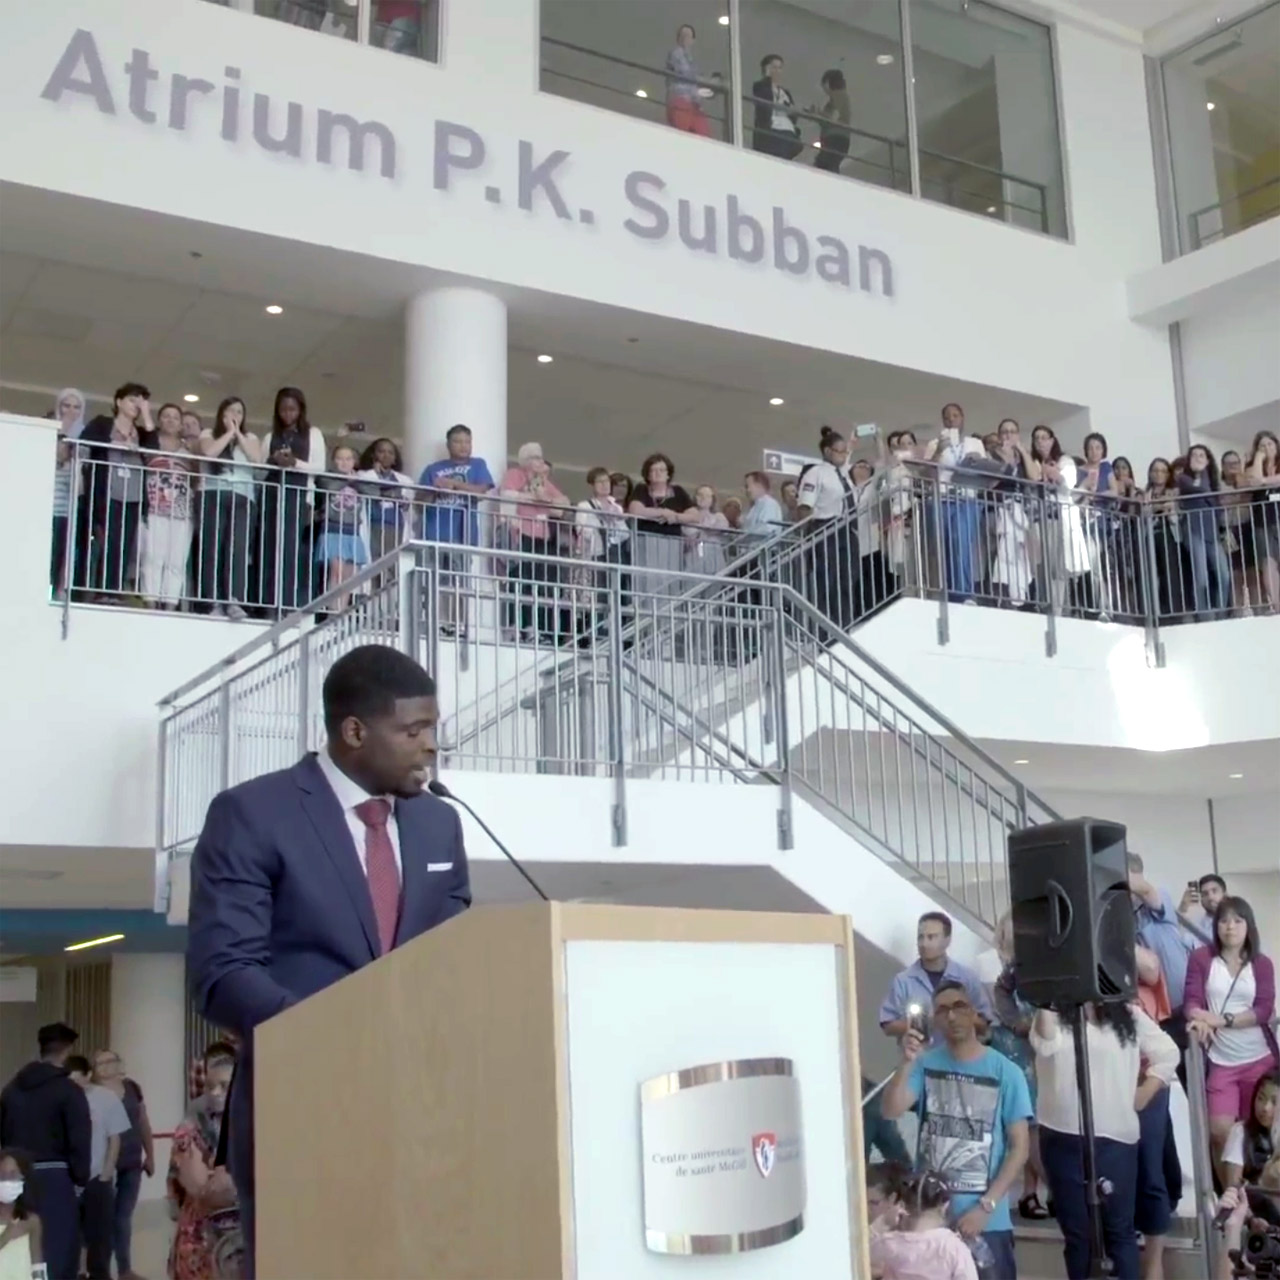 P.K. Subban Atrium at the Montreal Children's Hospital